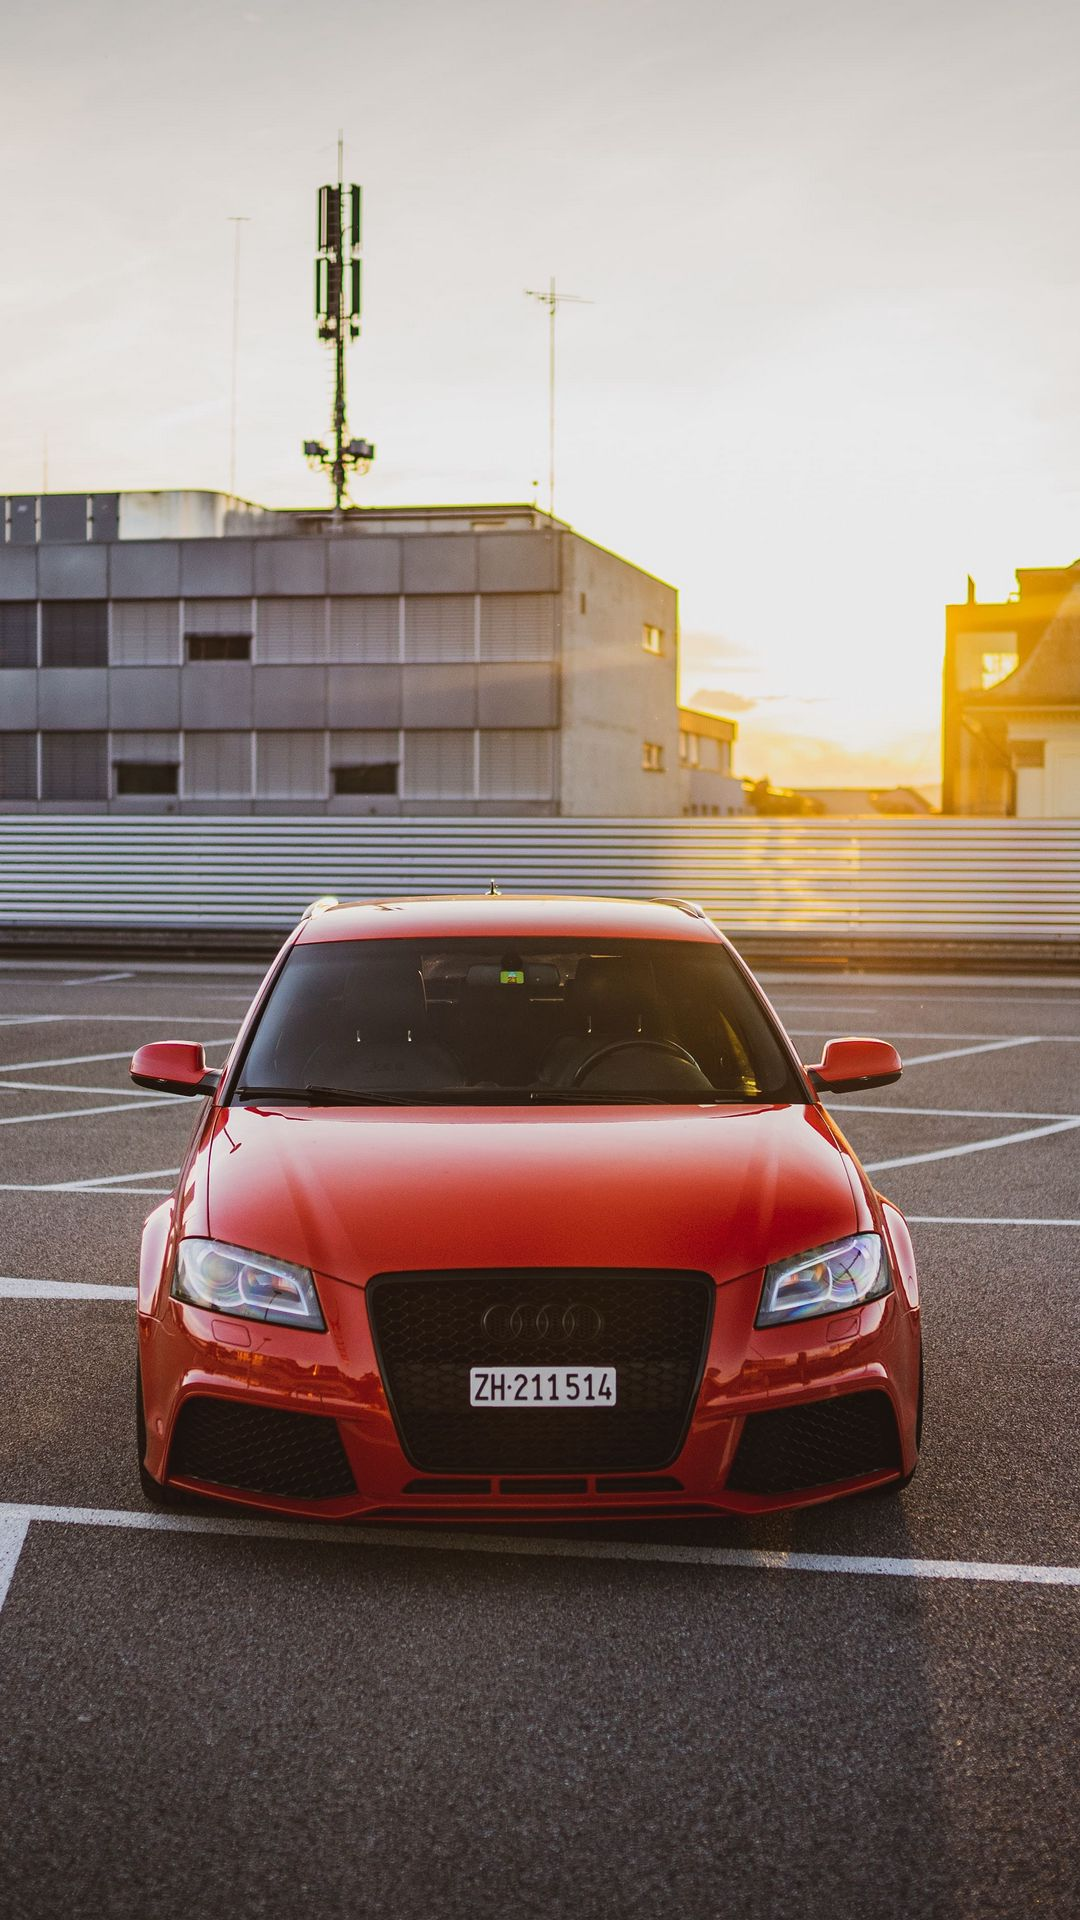 Audi Wallpapers Download for iPhone